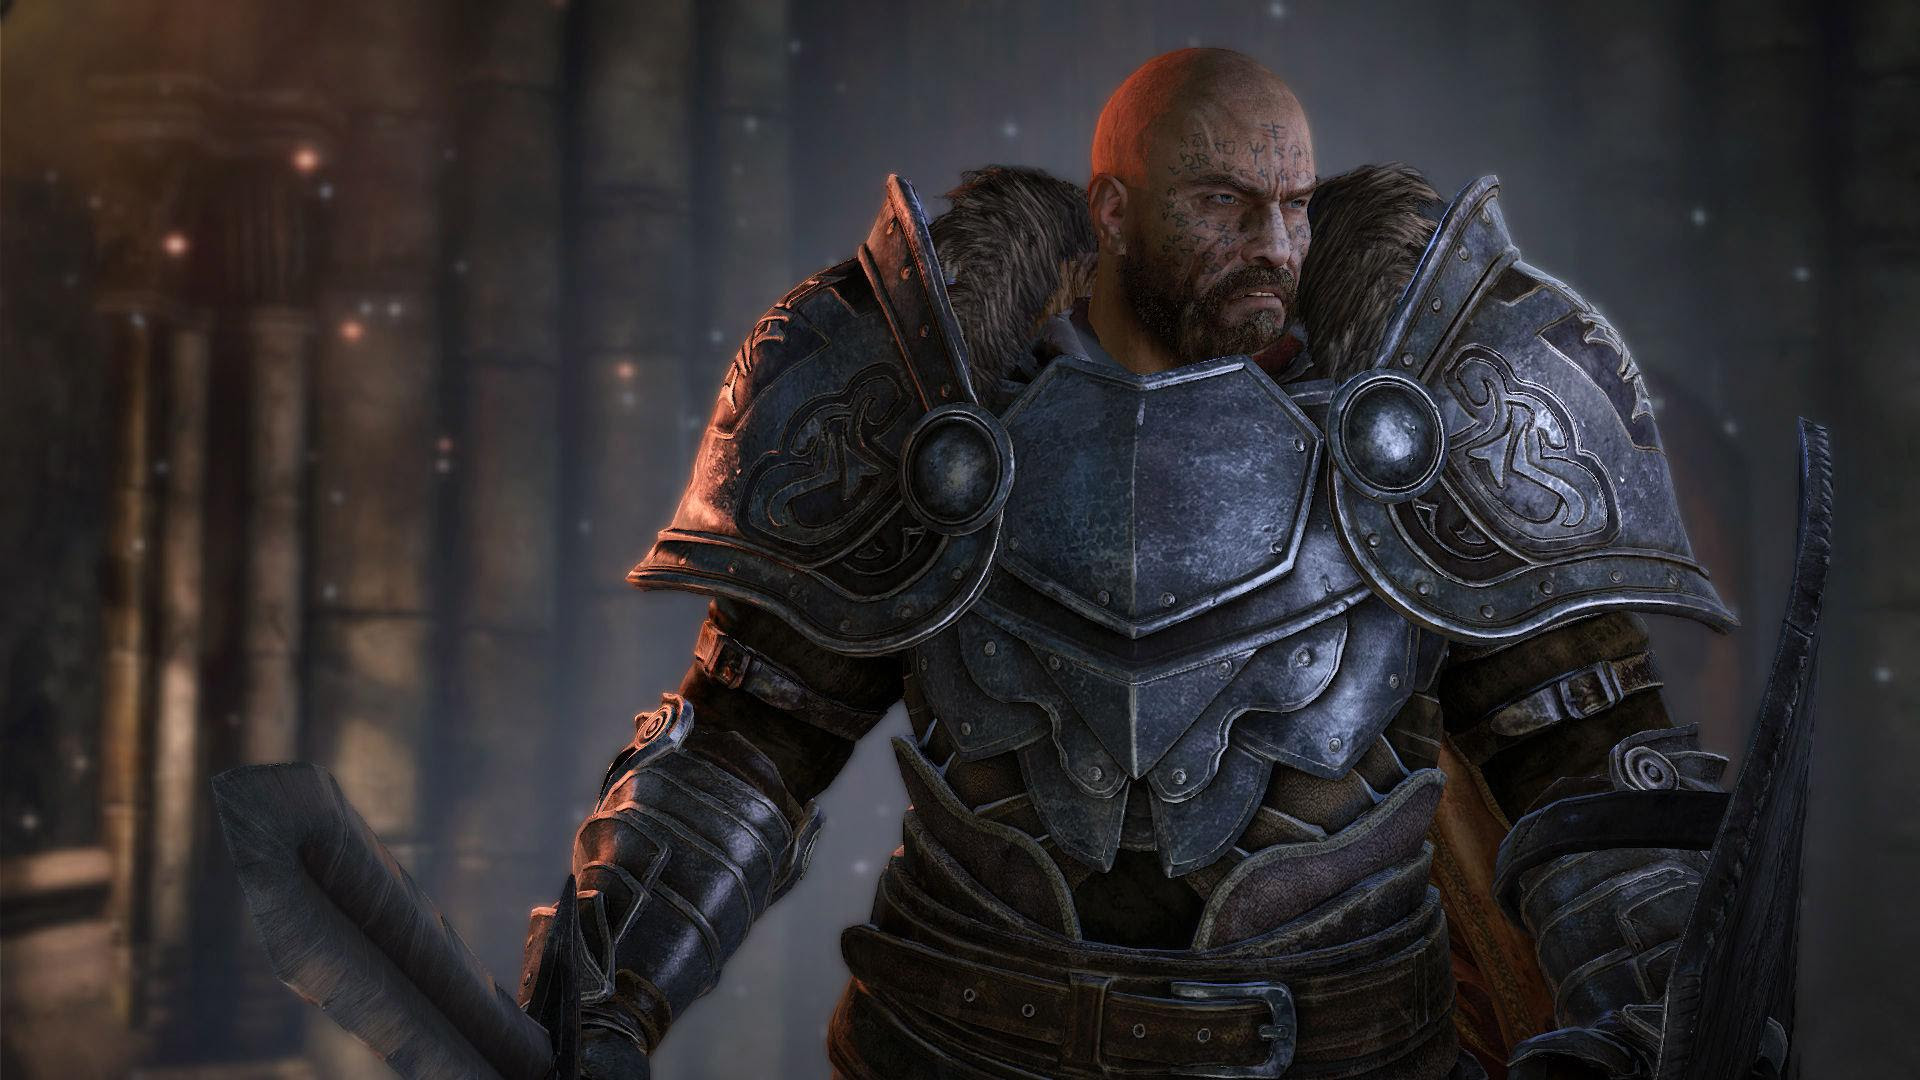 Hd Lords Of The Fallen Soldier Wallpaper Download Free 148571